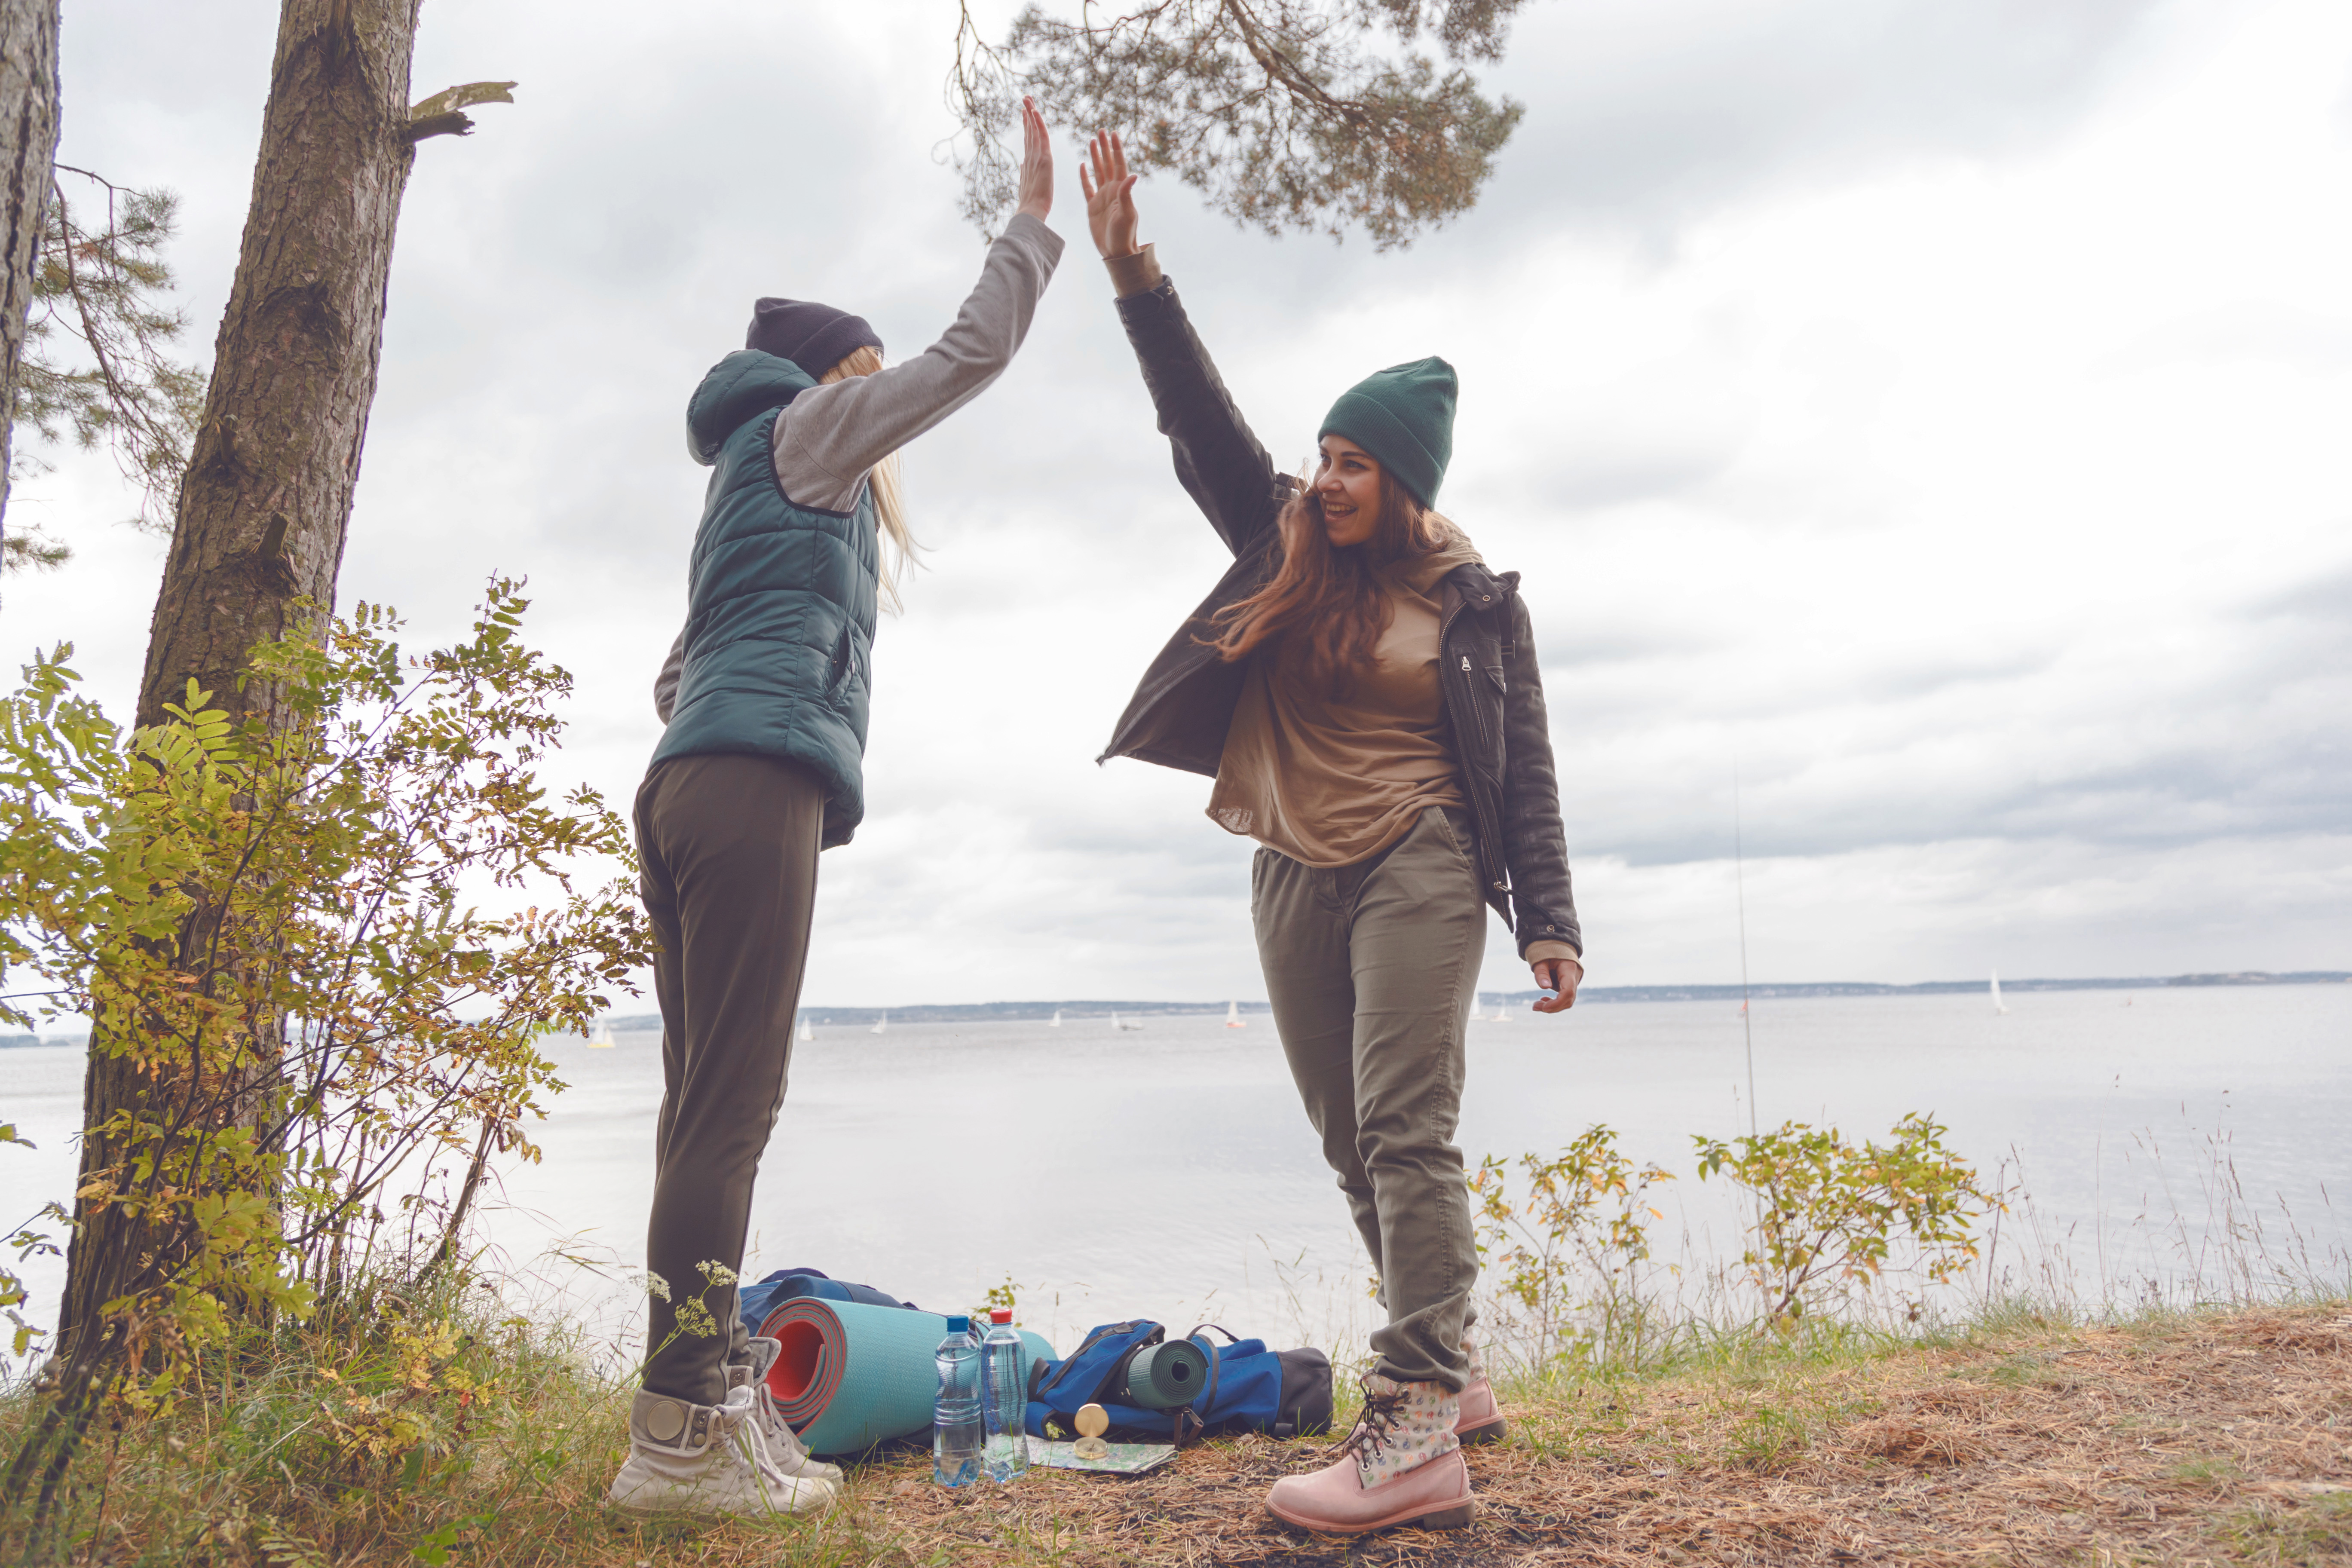 two-girlfriends-travelers-are-proud-of-themselves-and-gave-each-other-high-five.jpg